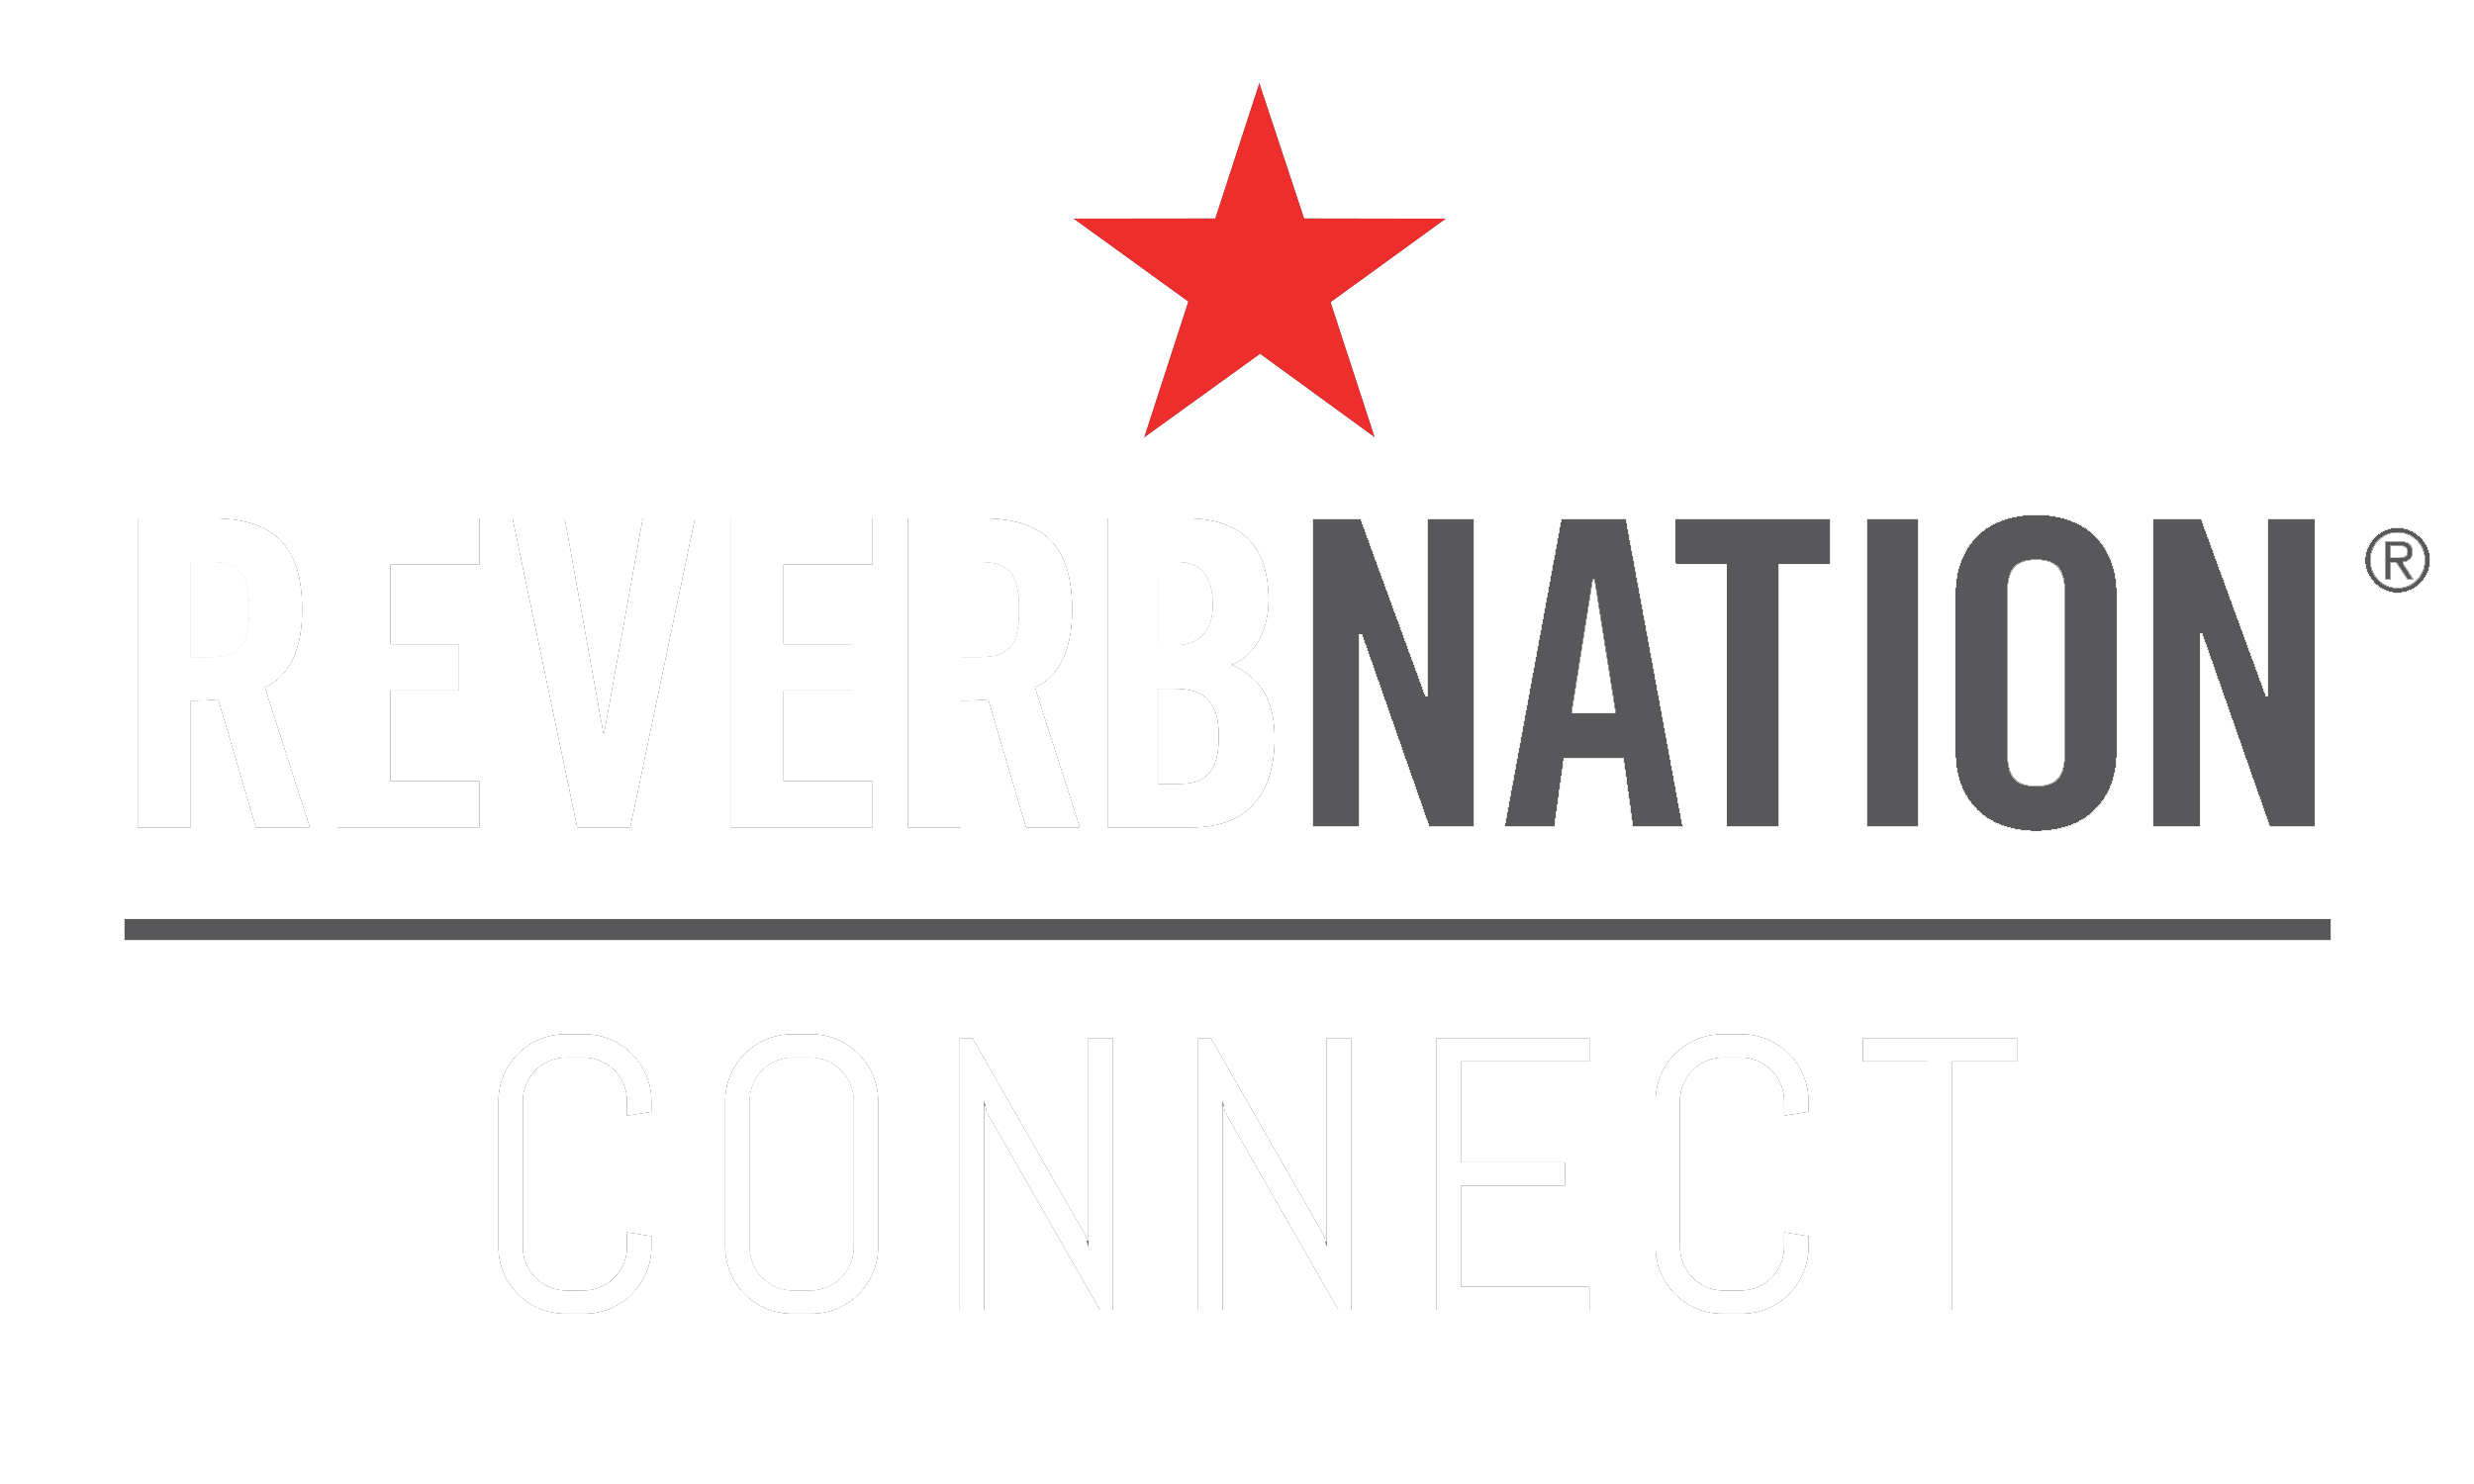 CONNECT in partnership with ReverbNation